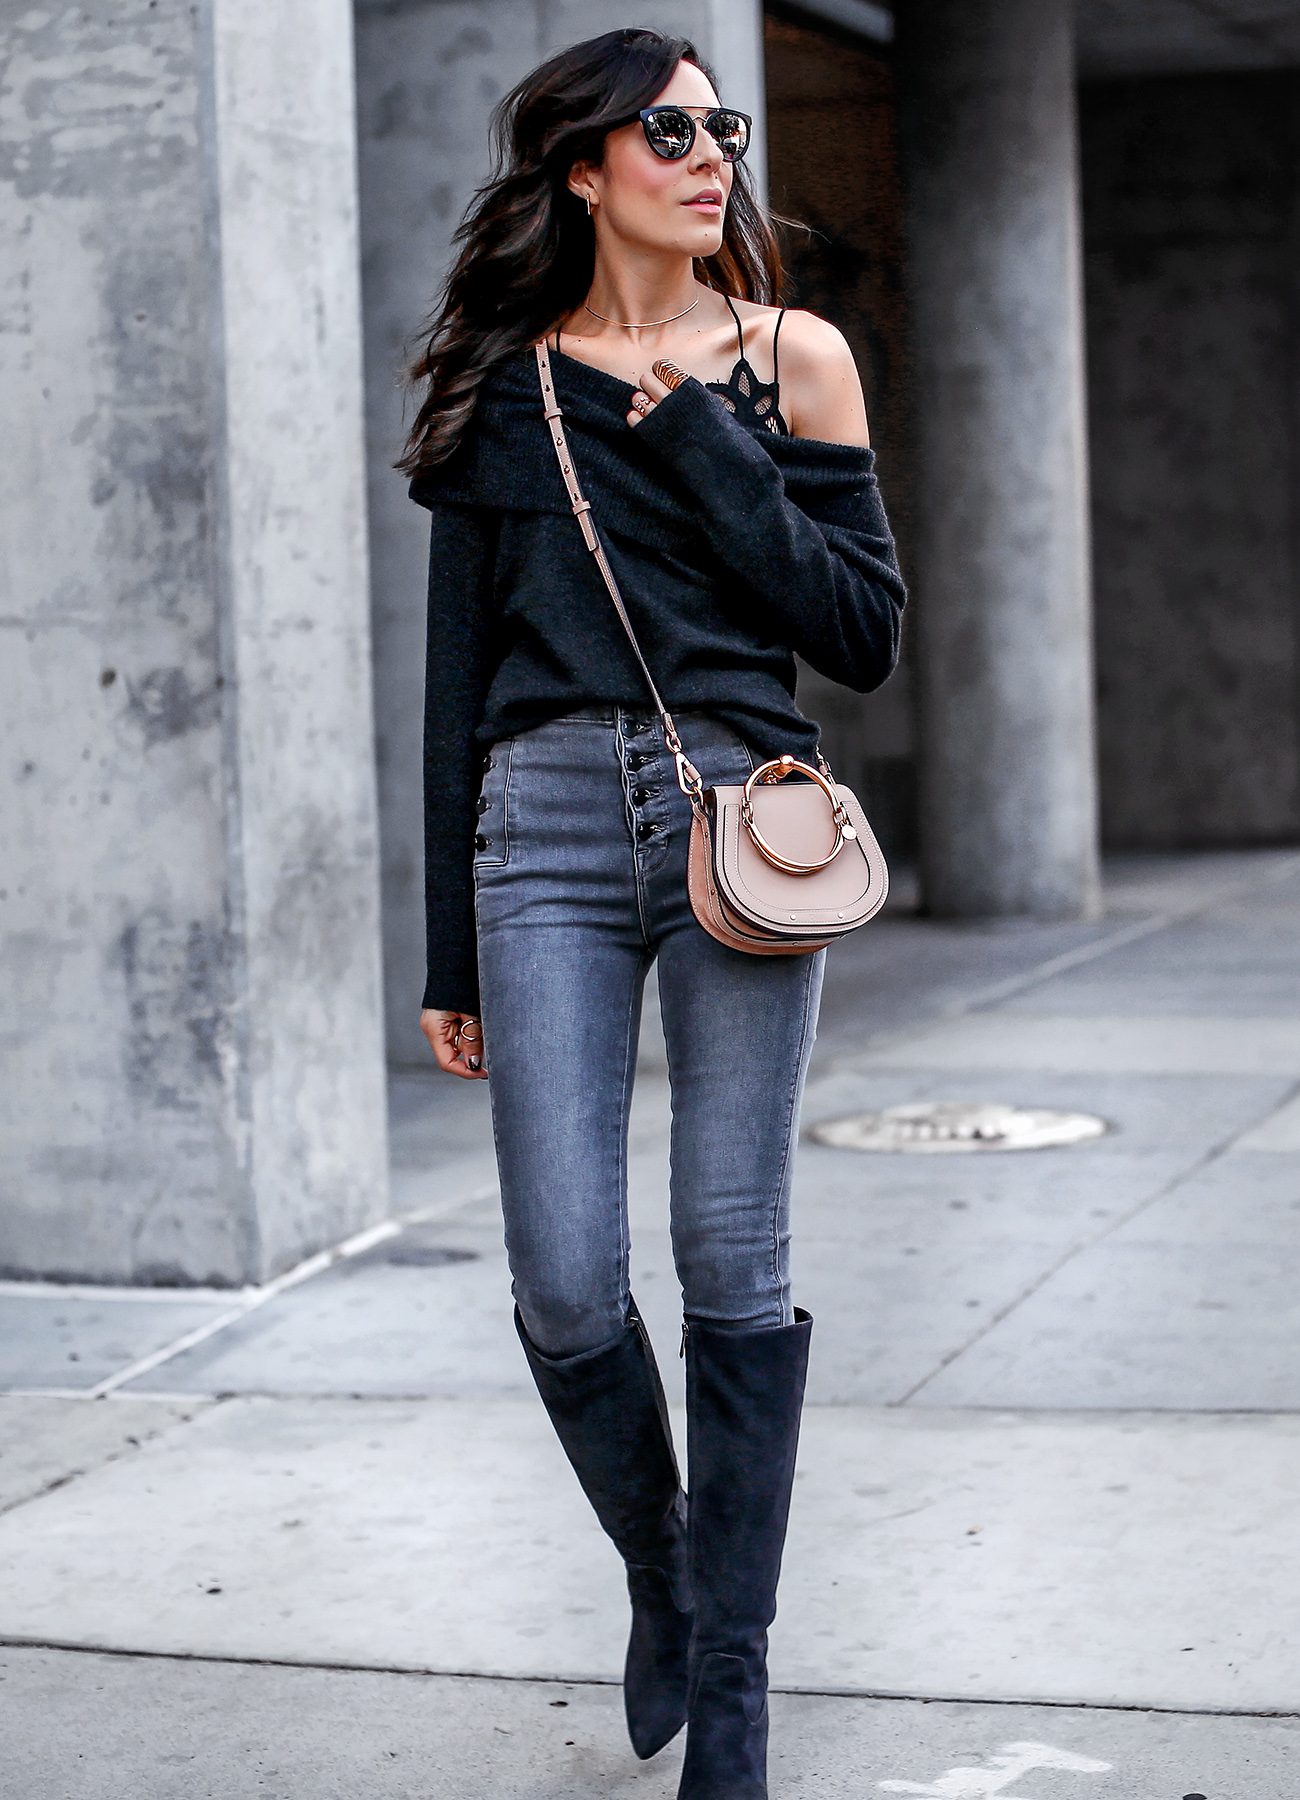 JBrand Jeans Joei Sweater Spring Fashion Sam Edelman Boots Chloe Nile Bag.jpg